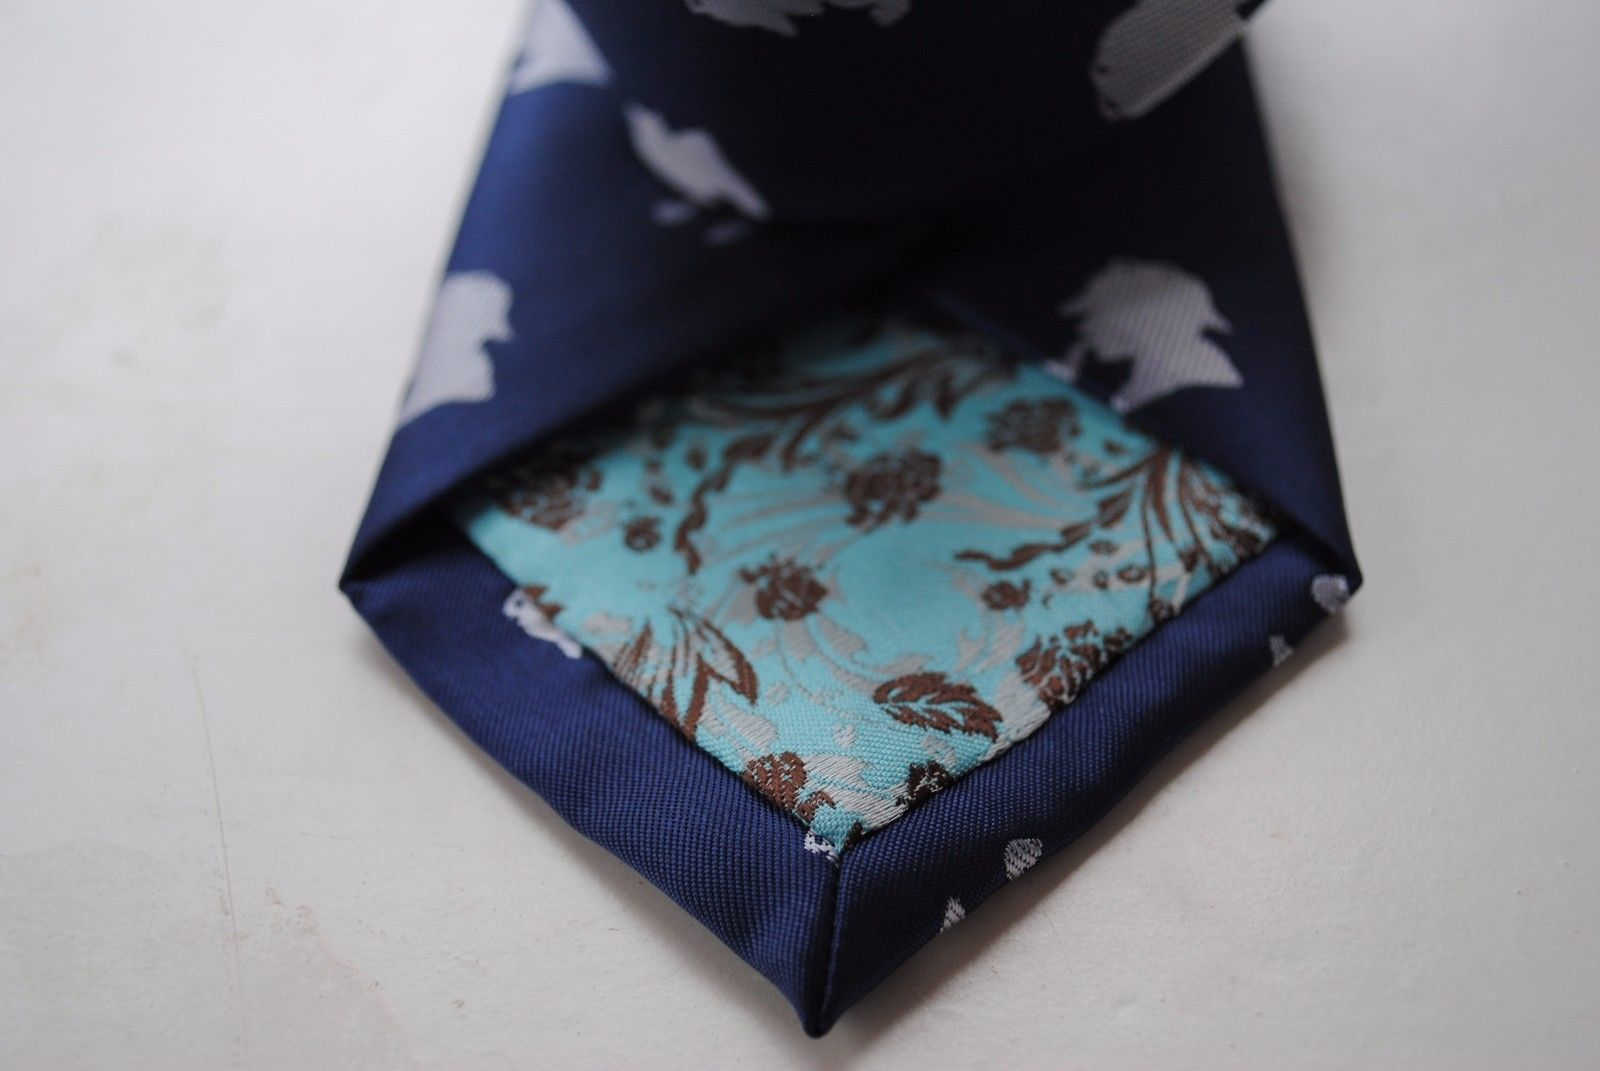 Navy Mens Tie with embroidered Sherlock Holmes Design by Frederick Thomas FT624